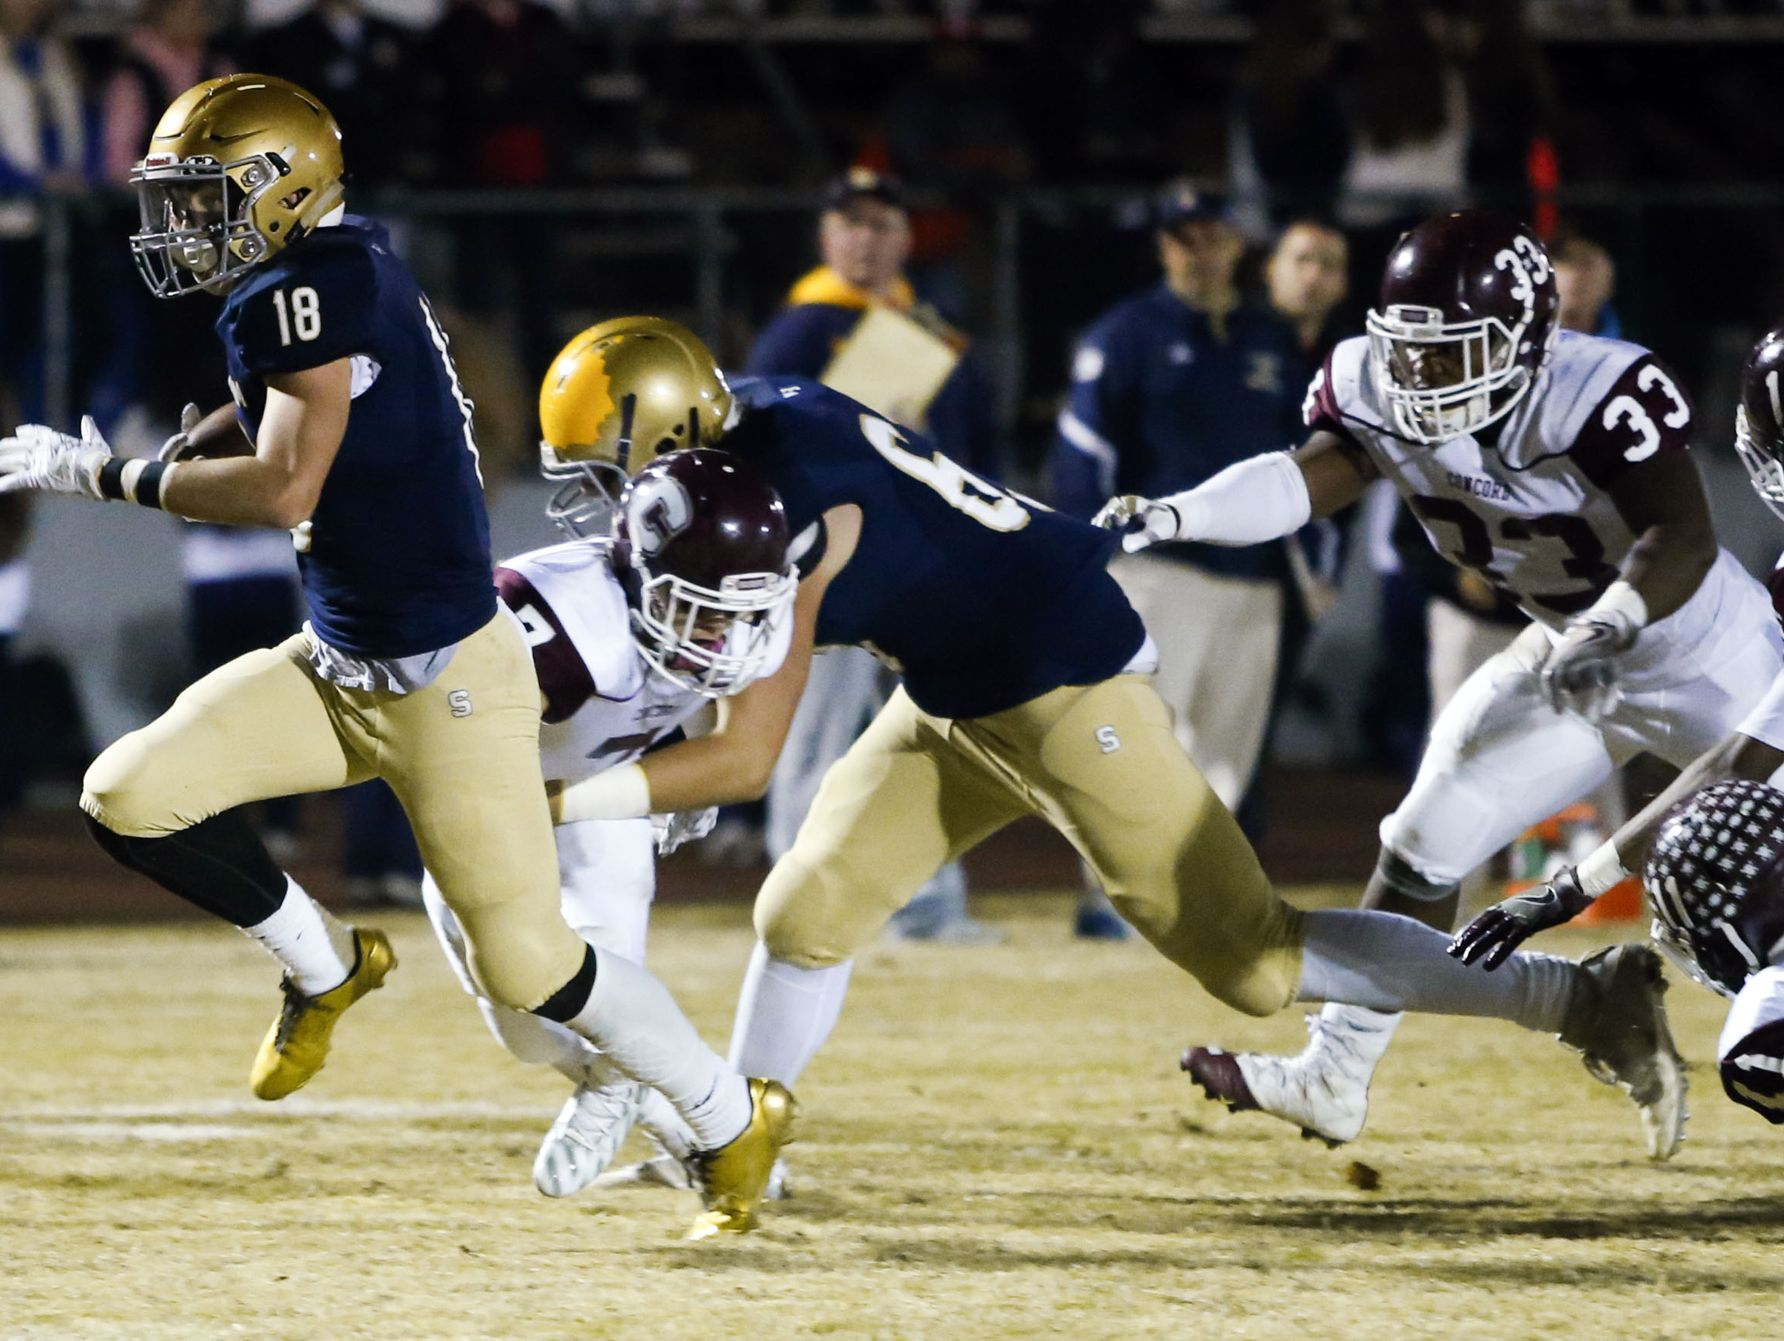 Salesianum's Nick Merlino gets into the Concord secondary before scoring on a run in the second quarter of a DIAA state tournament opening round game at Baynard Stadium Friday.